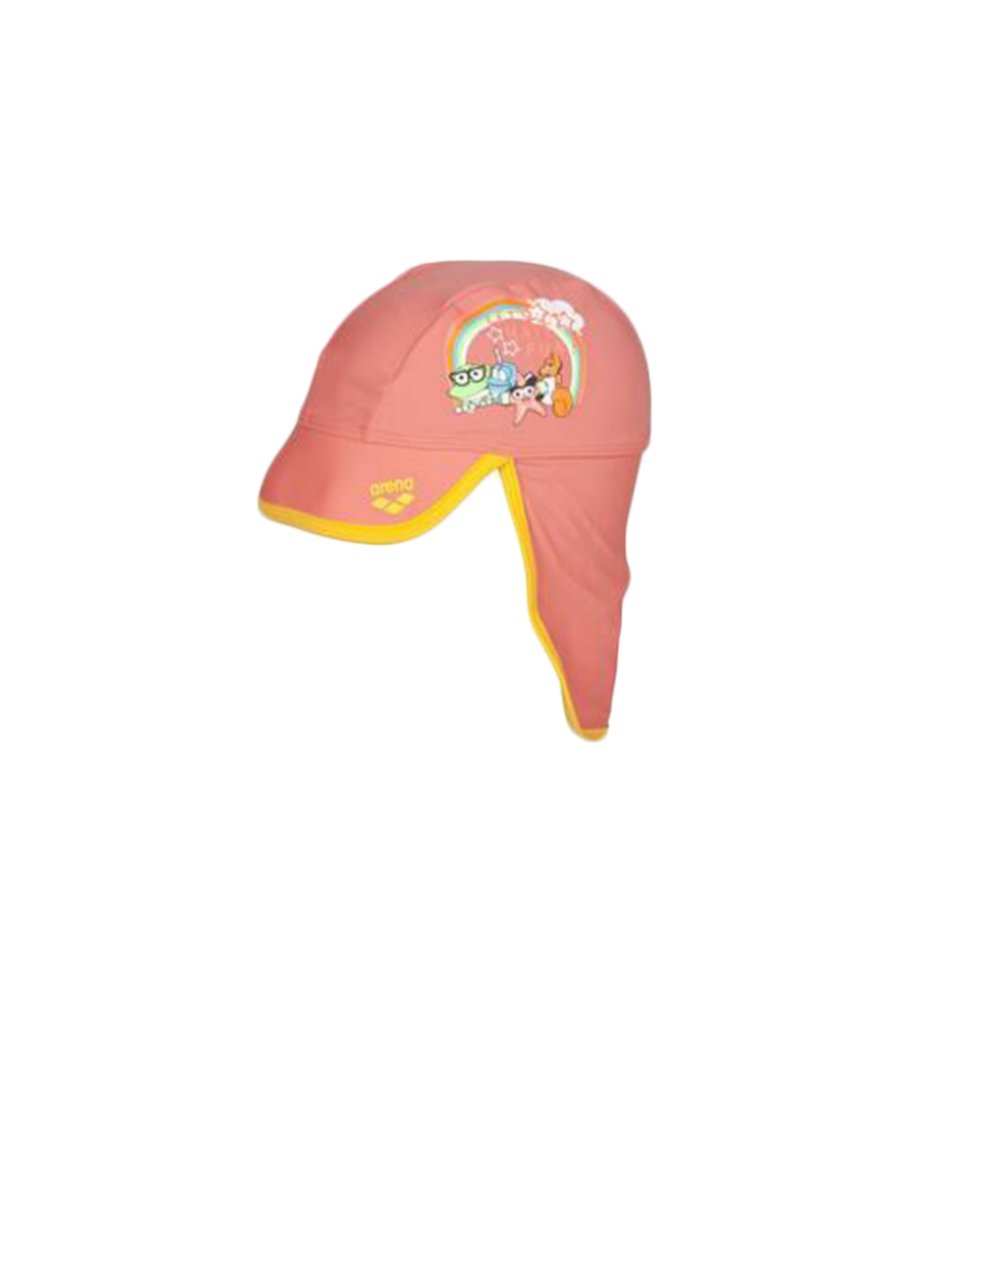 Arena AWT Kids UV Sun Protect Cap (002062943) Pale Rose/Lily Yellow